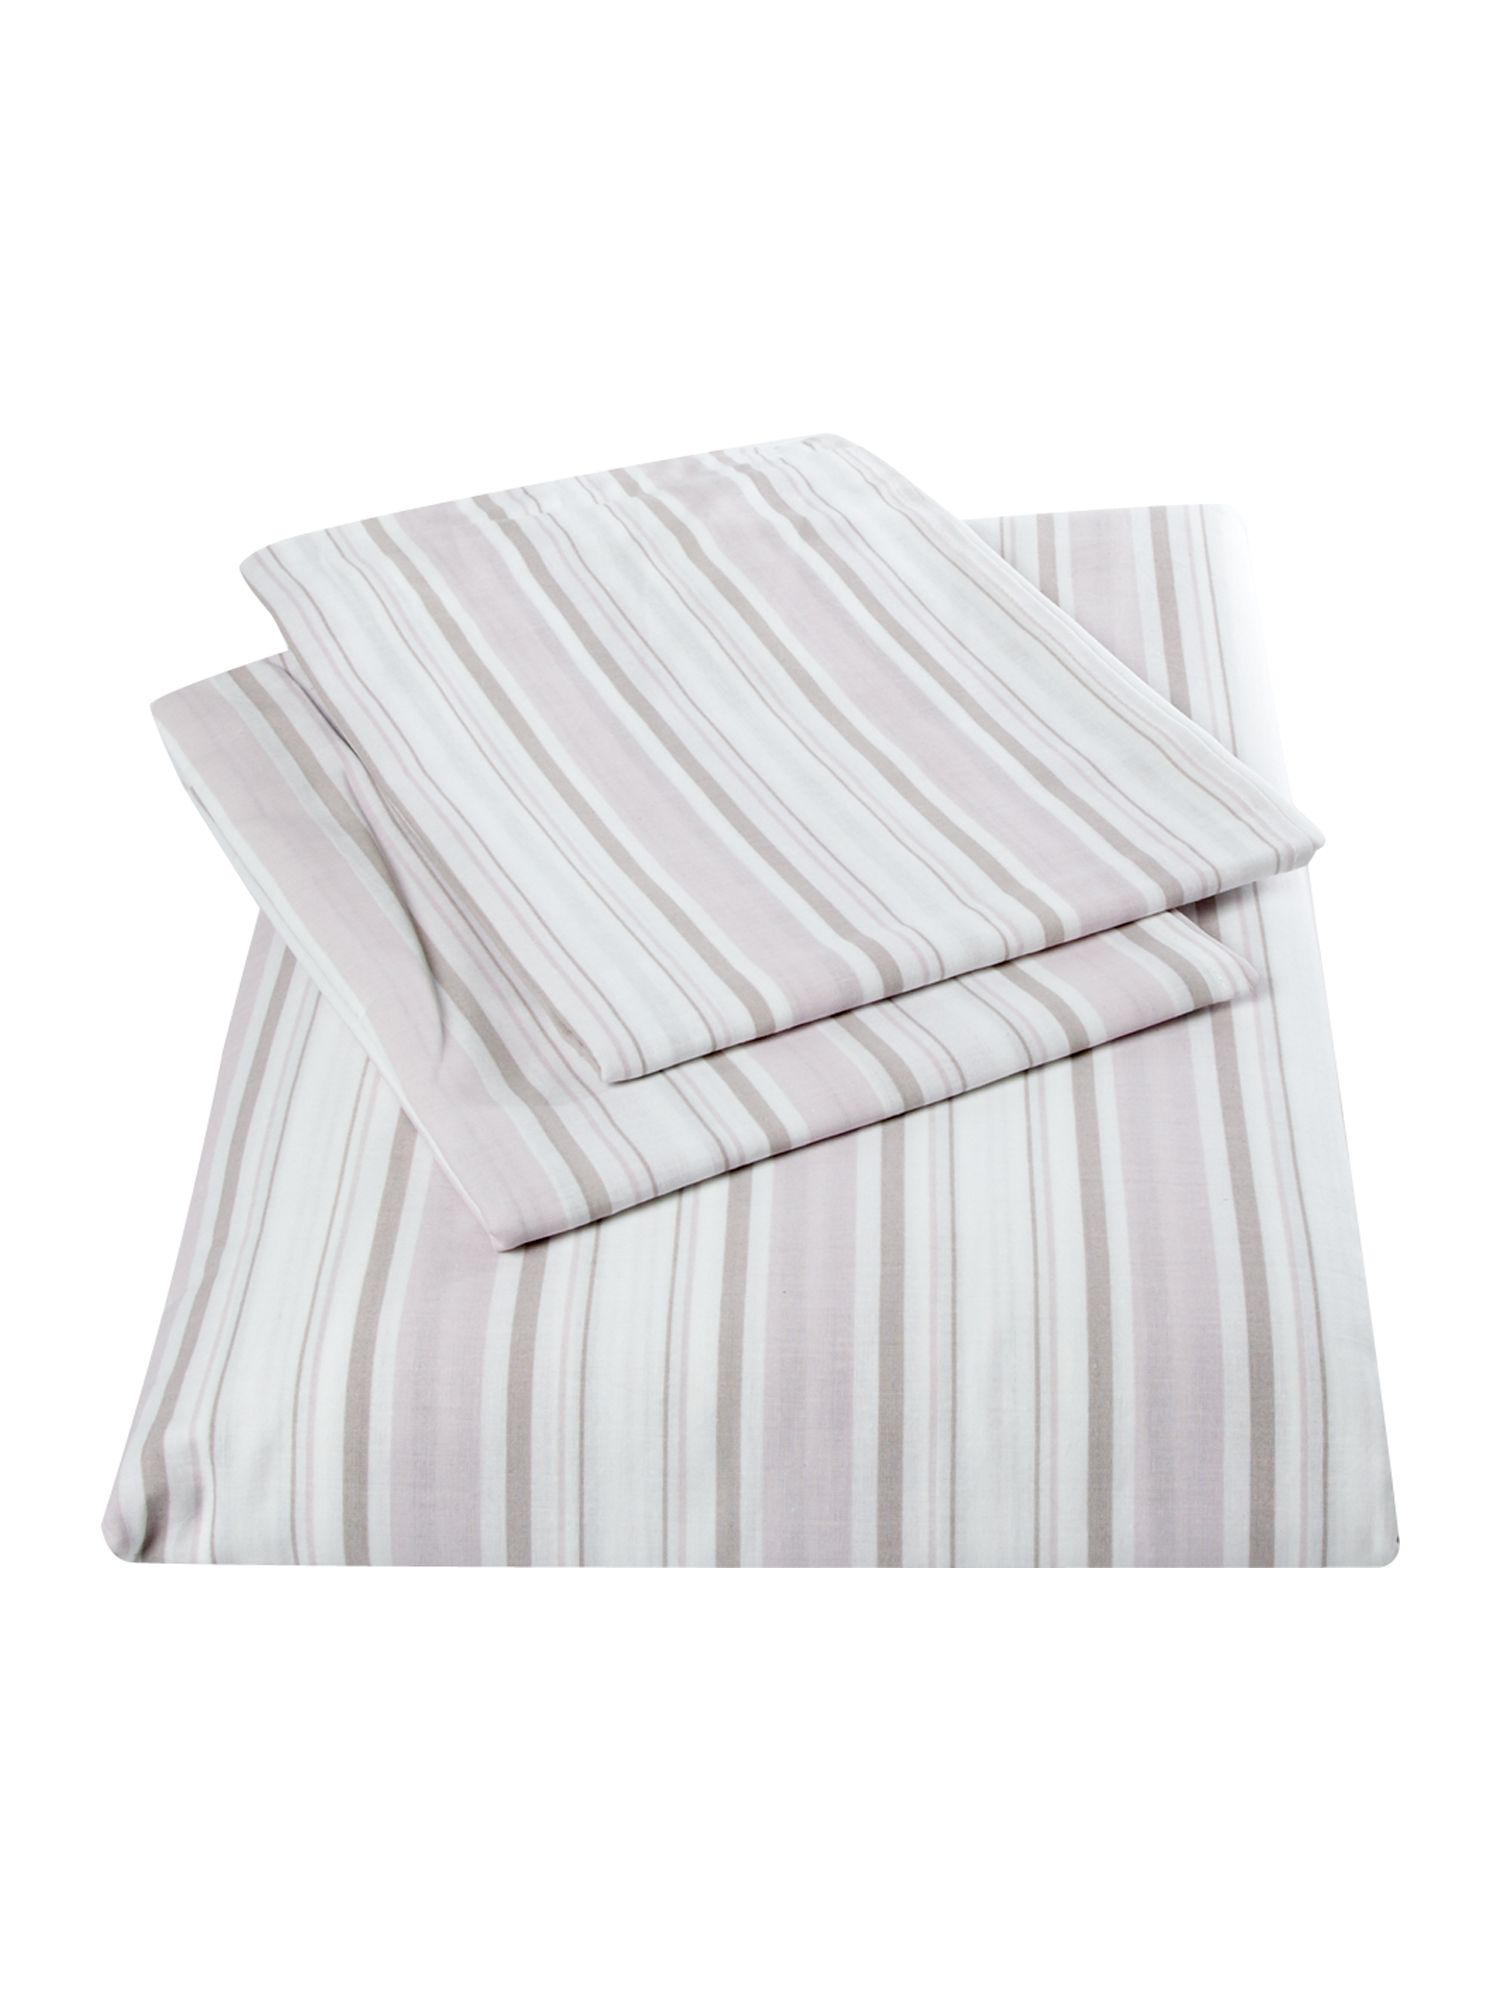 Striped bedset in lilac